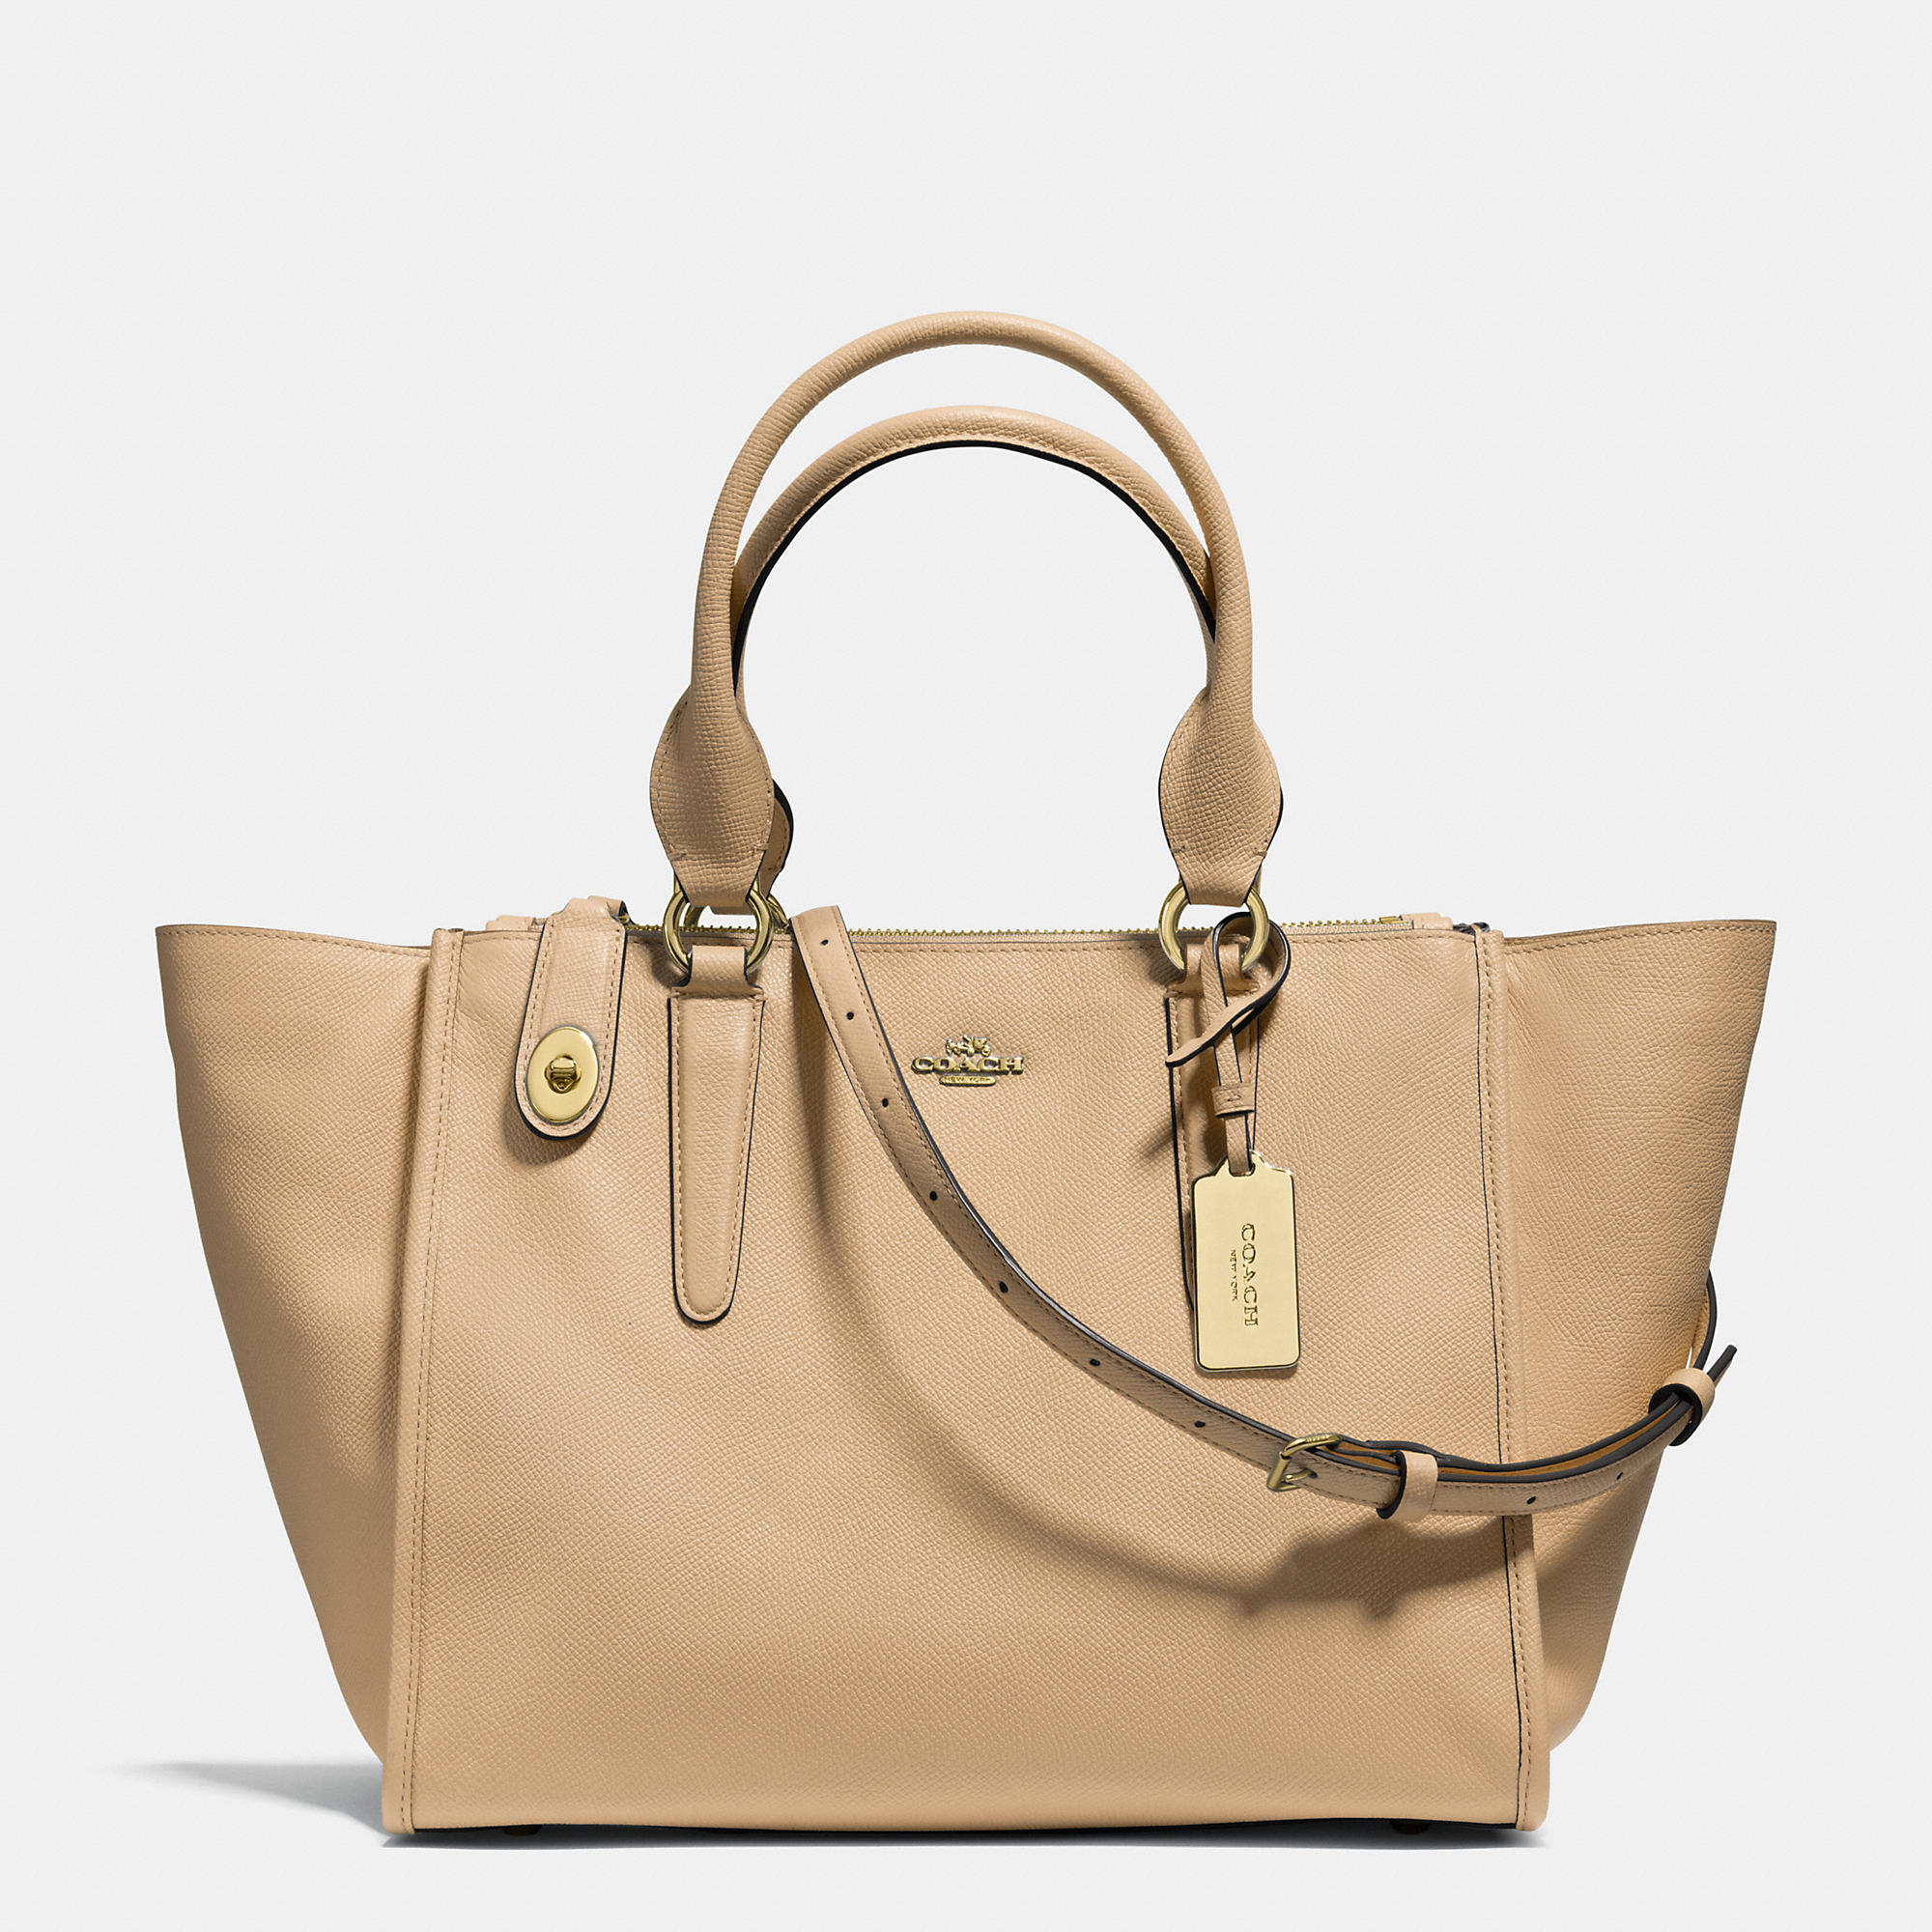 Coach Crosby Carryall In Crossgrain Leather in Natural | Lyst